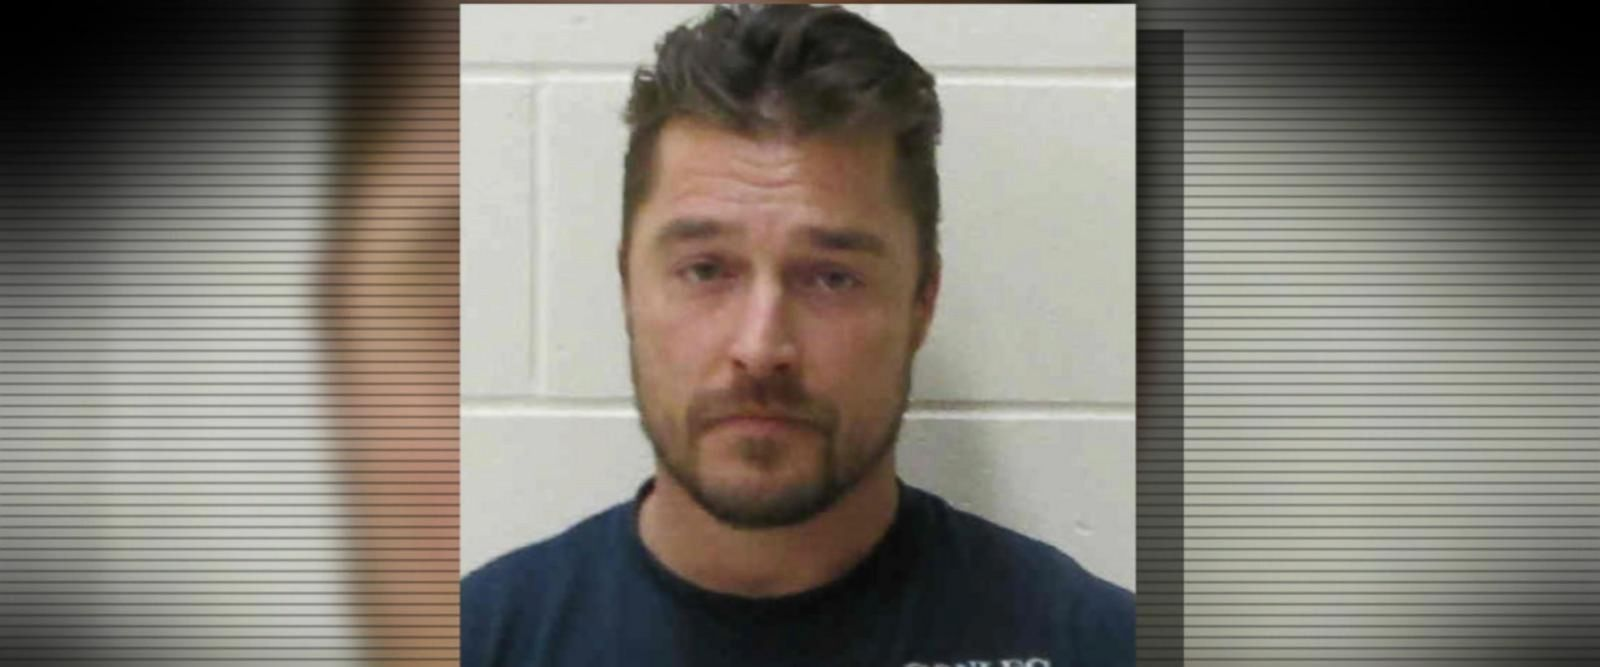 VIDEO: 911 call released in fatal accident involving ex-'Bachelor'